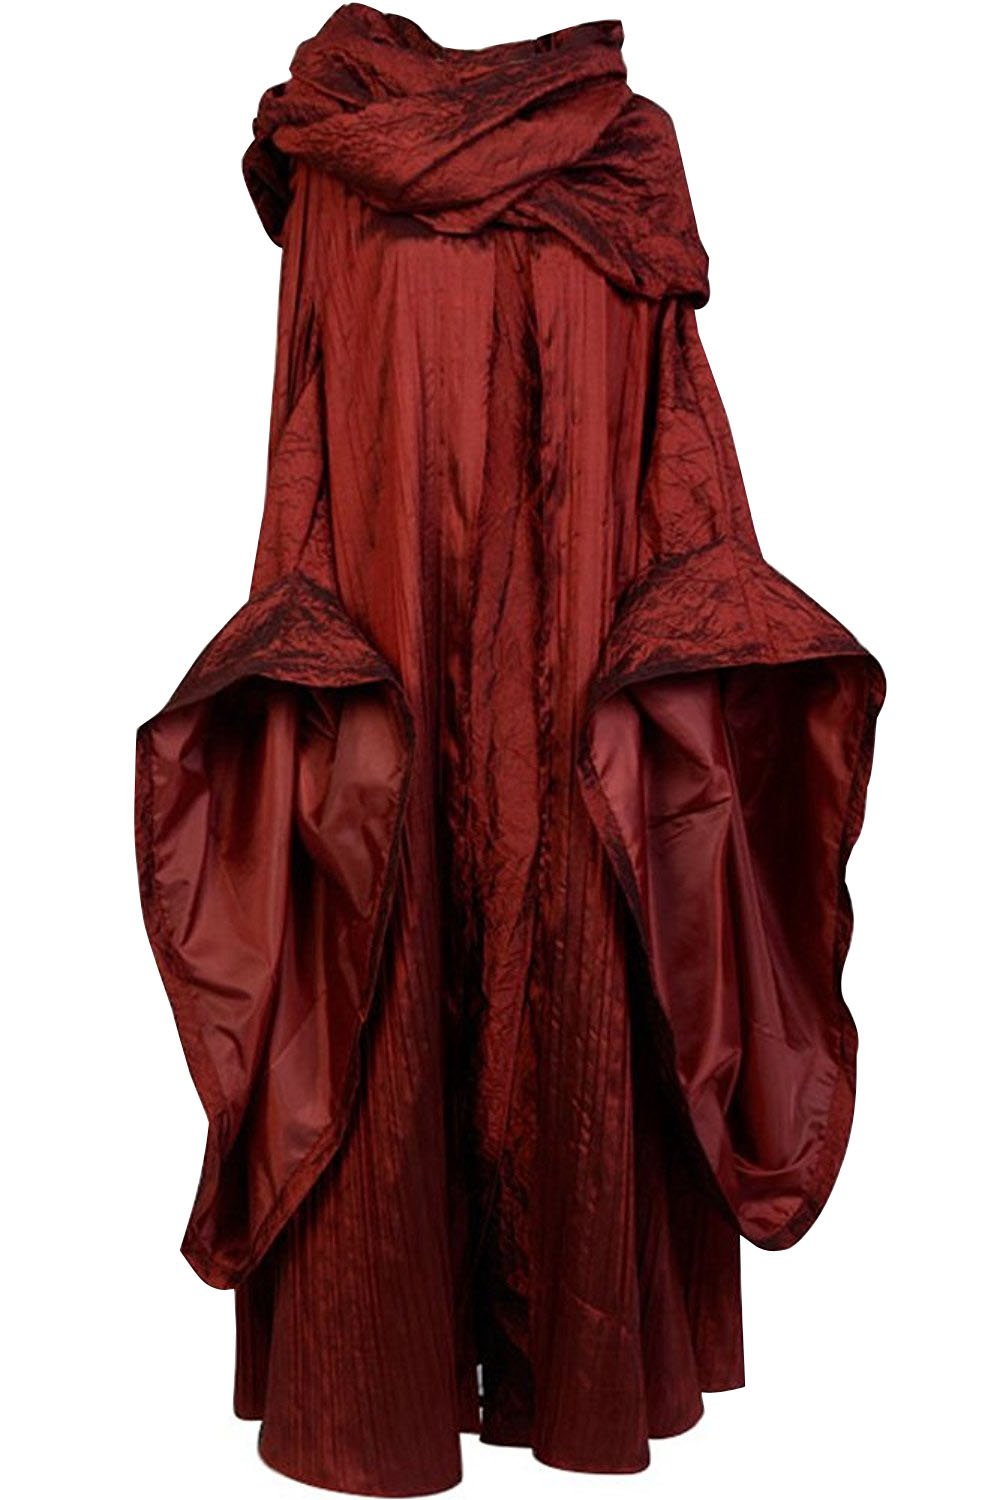 SIDNOR GoT Game of Thrones The Red Woman Melisandre Cosplay Costume Outfit Suit Dress (Medium)